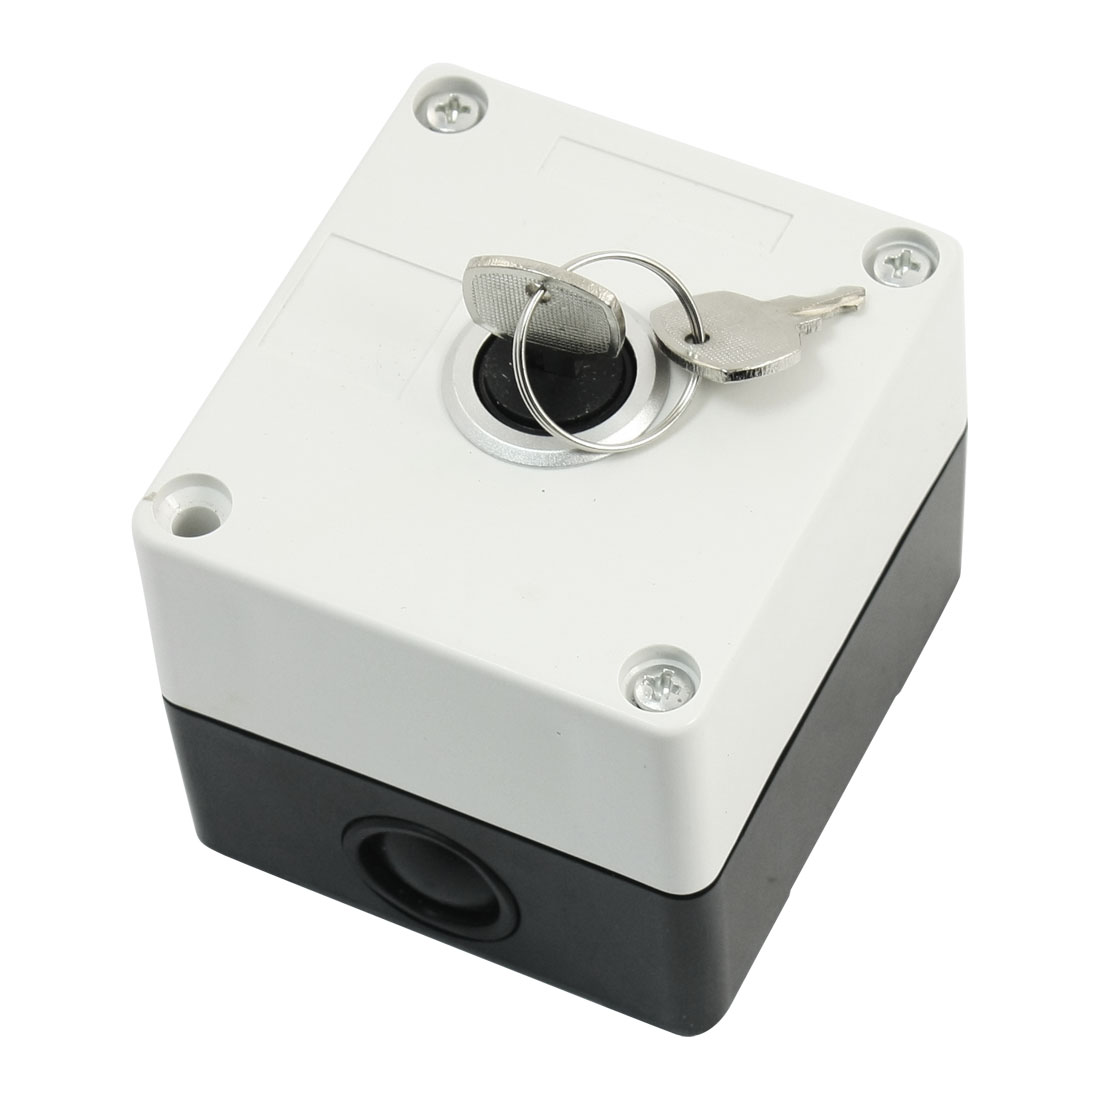 AC220V 5A SPDT 1NO 1NC 3-Pin 2-Position Rectangle White Plastic Case Keys Rotary Selector Switch Control Station Box